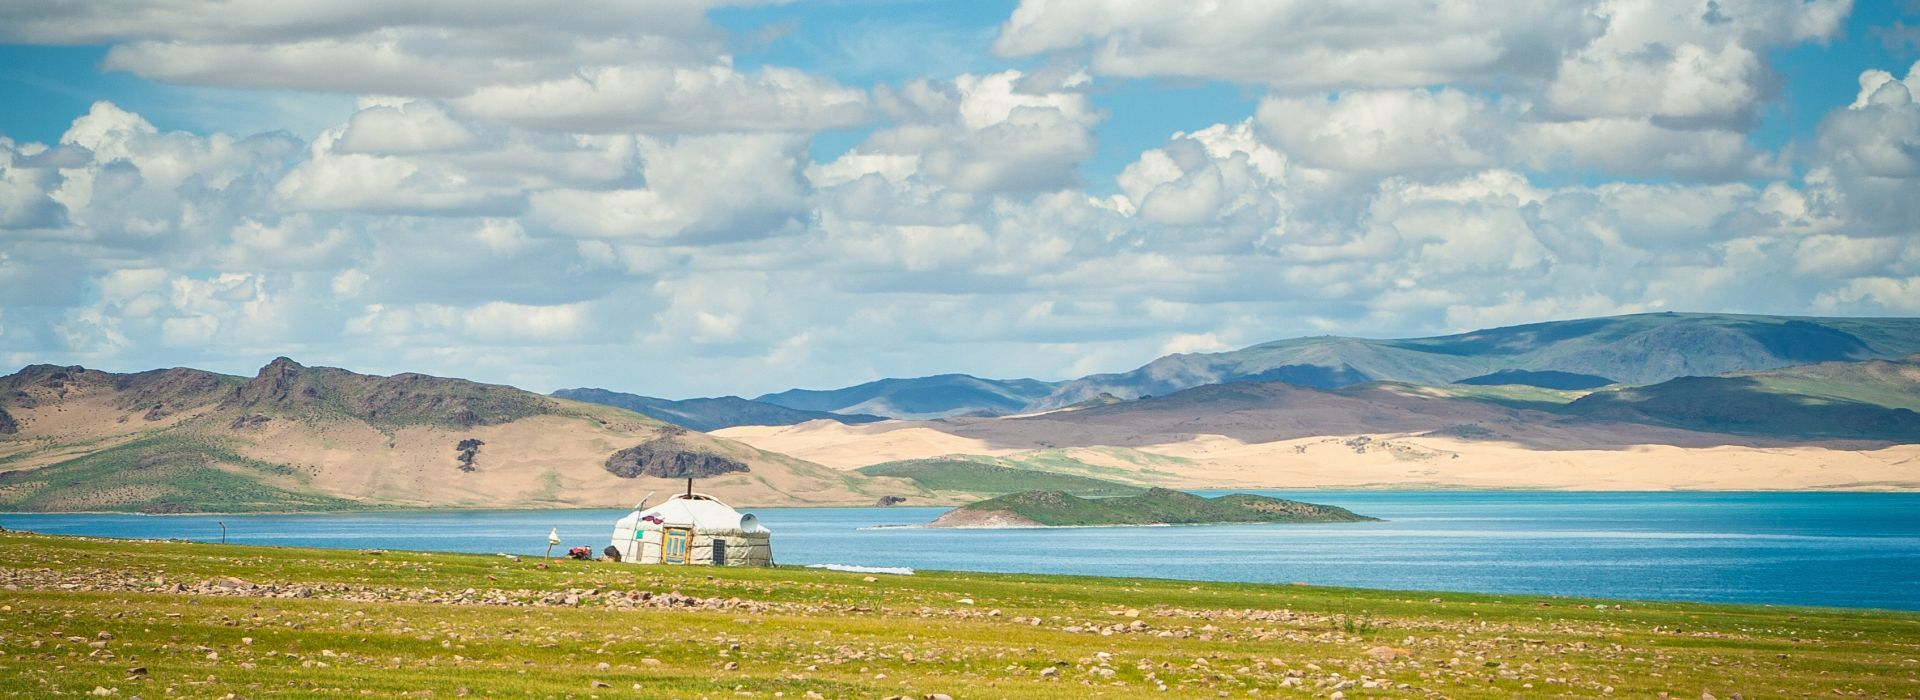 Mountain biking Tours in Mongolia